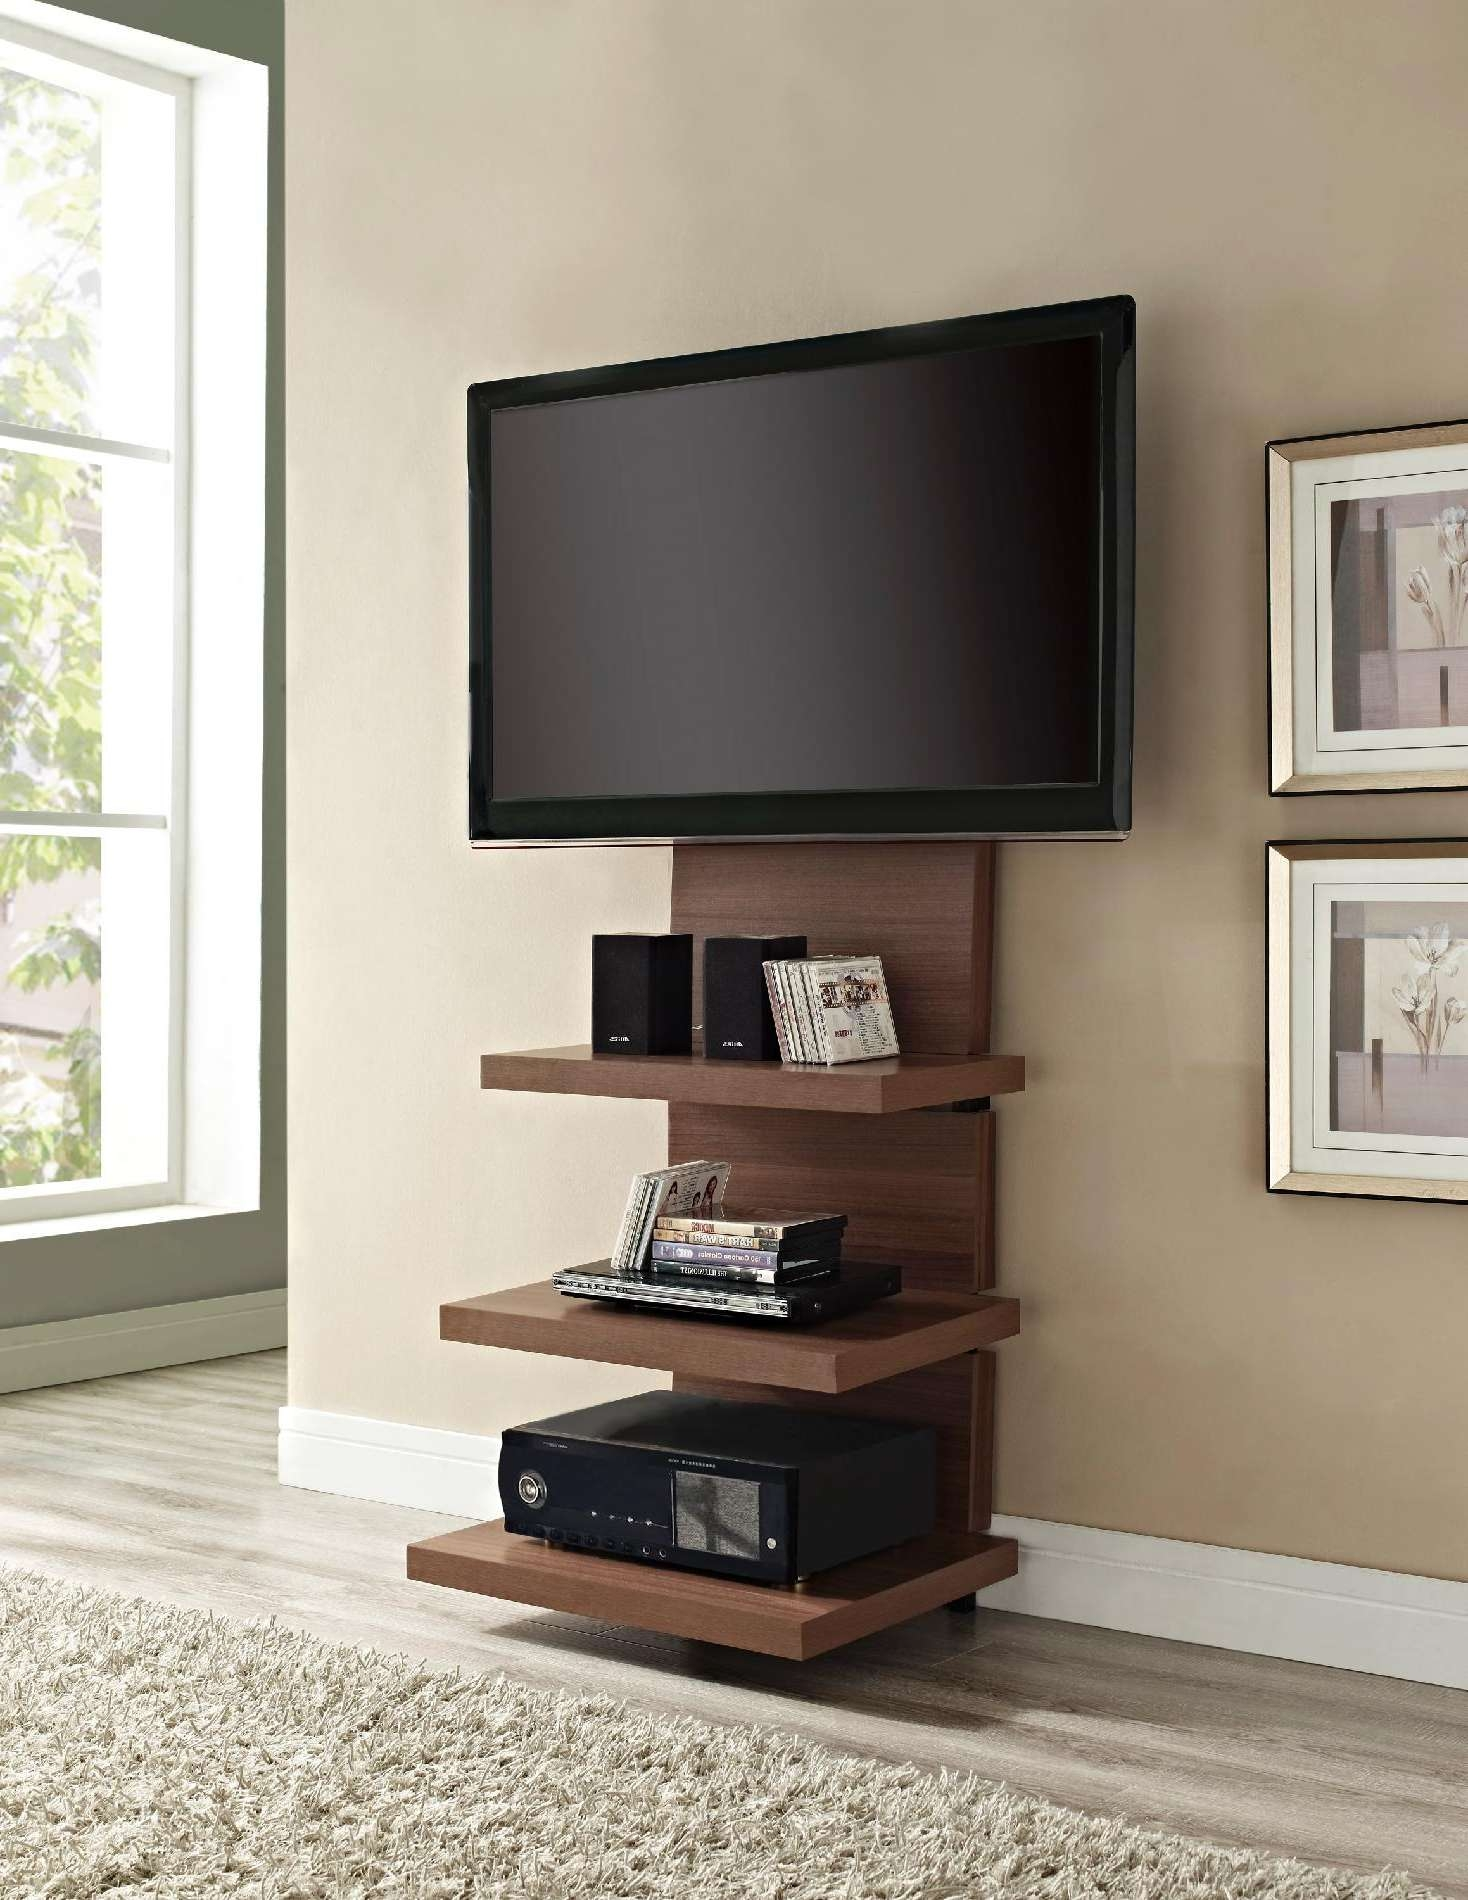 Chic And Modern Tv Wall Mount Ideas For Living Room Stands With With Modern Tv Stands With Mount (View 3 of 15)